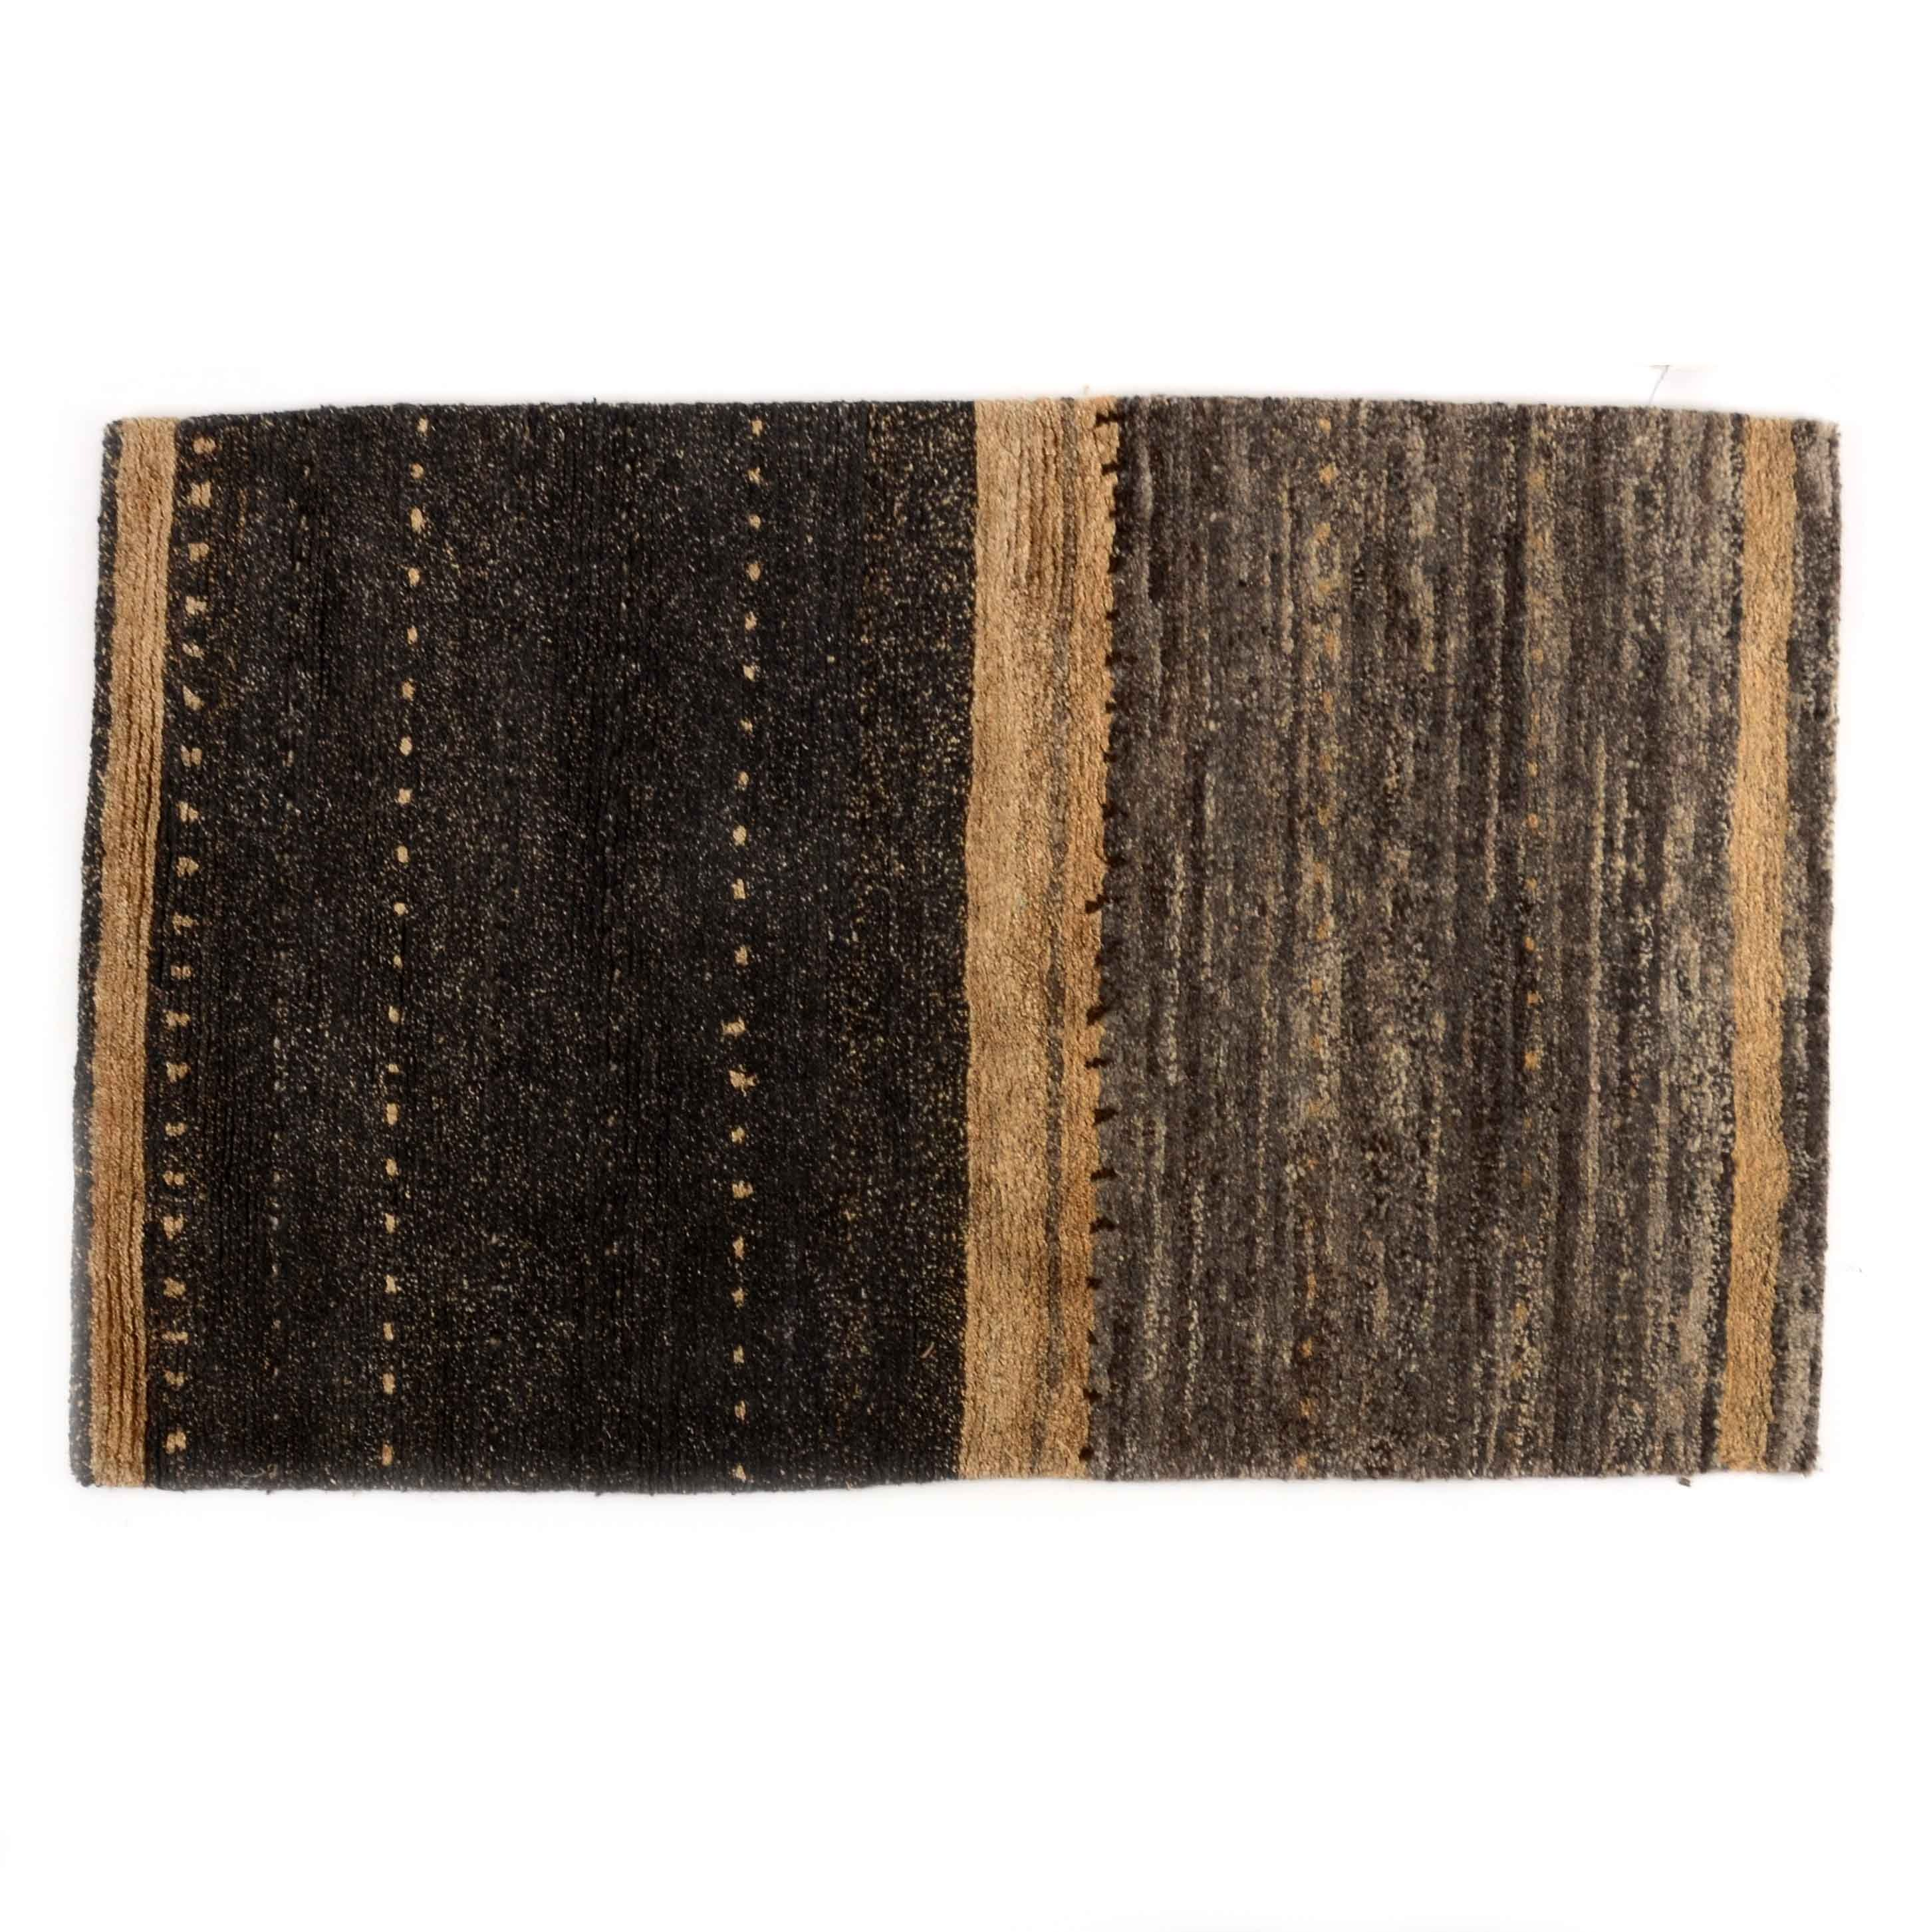 Coconino Tweed Accent Rug from the Strata Collection by Clodagh